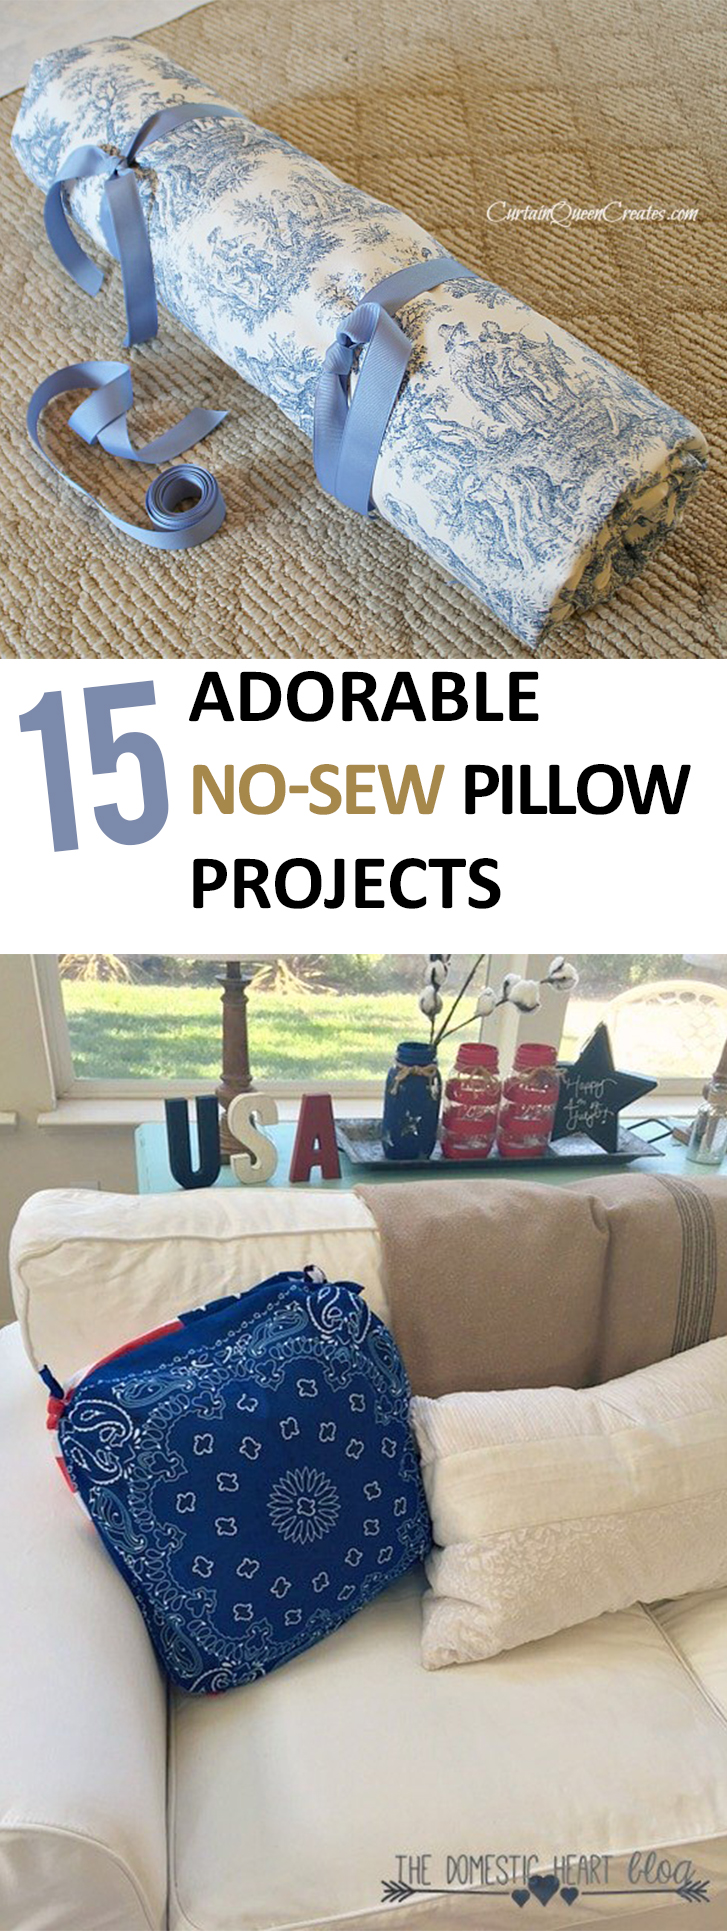 No Sew Pillow, No Sew Pillow Projects, Project Ideas, Easy Craft Ideas, Easy No Sew Projects, Sewing Projects for Beginners, Quick Sewing Projects, Homemade Projects, Simple Sewing Projects, Popular Pin